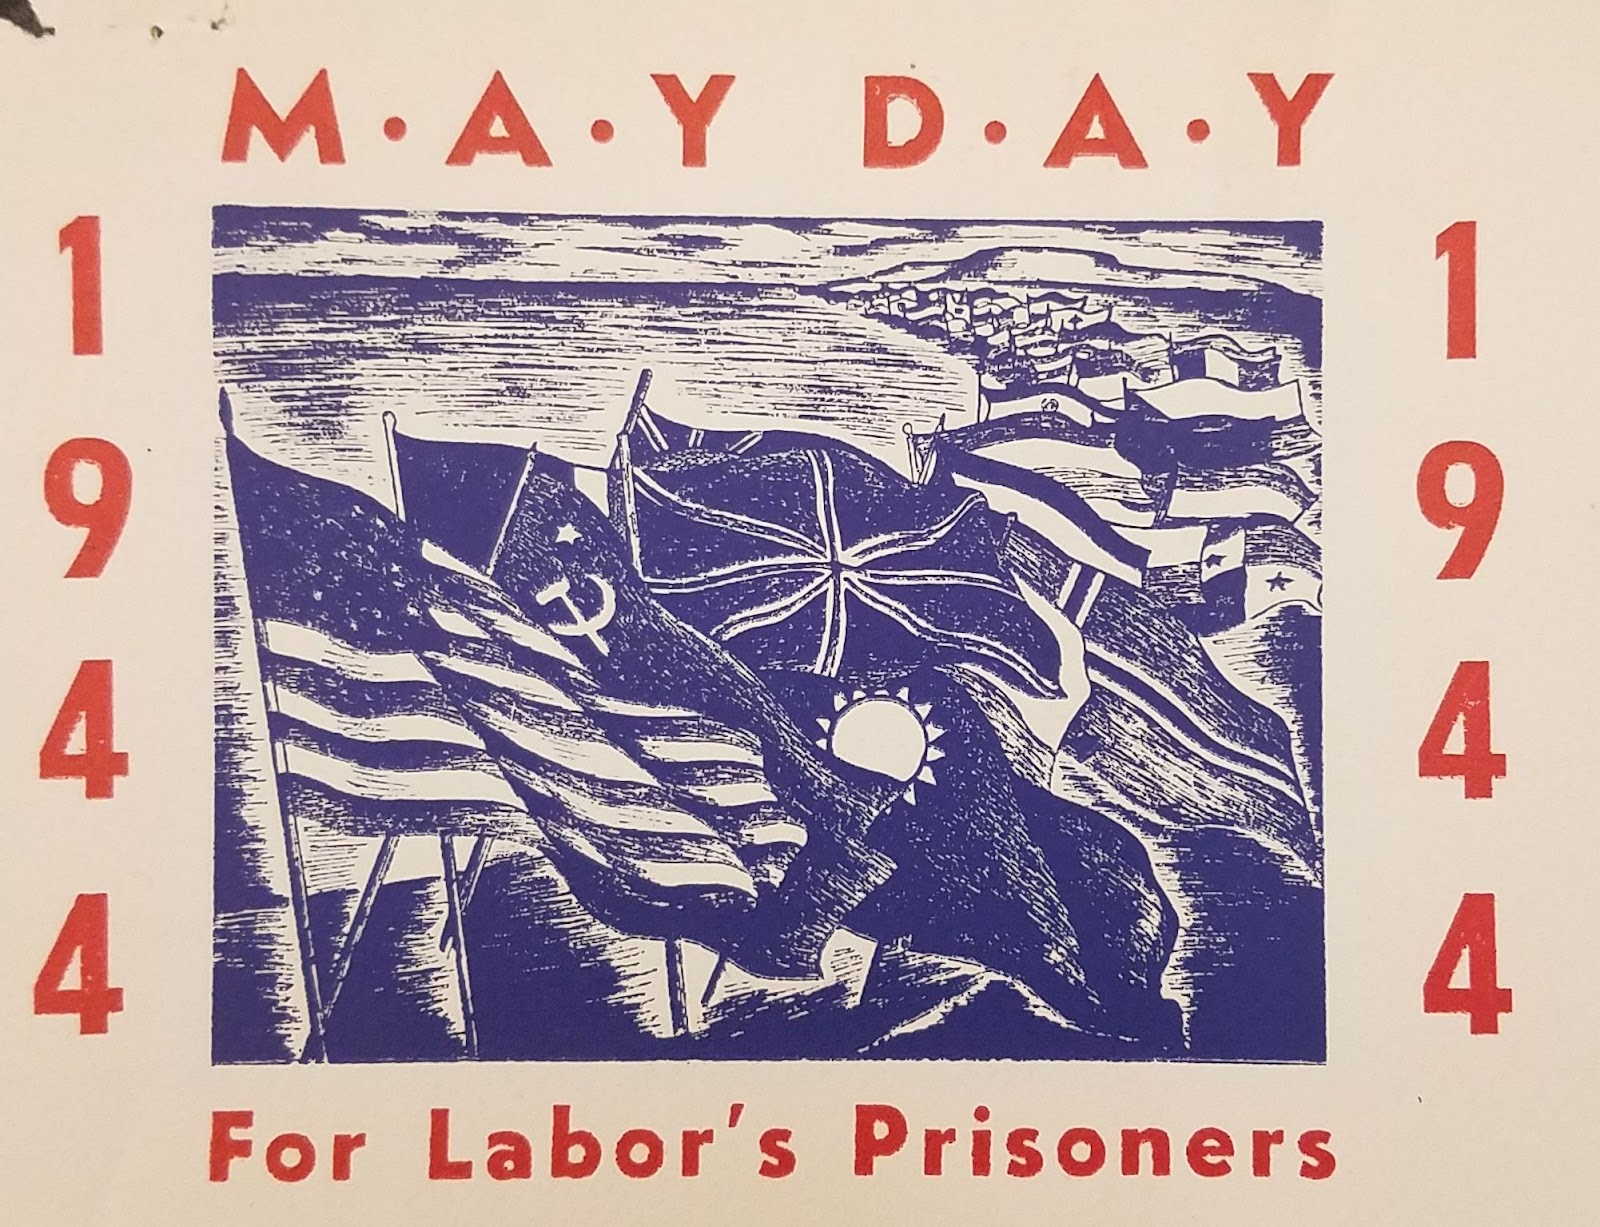 Flyer stating May Day 1944, For Labor's Prisoners, with an image of various flags